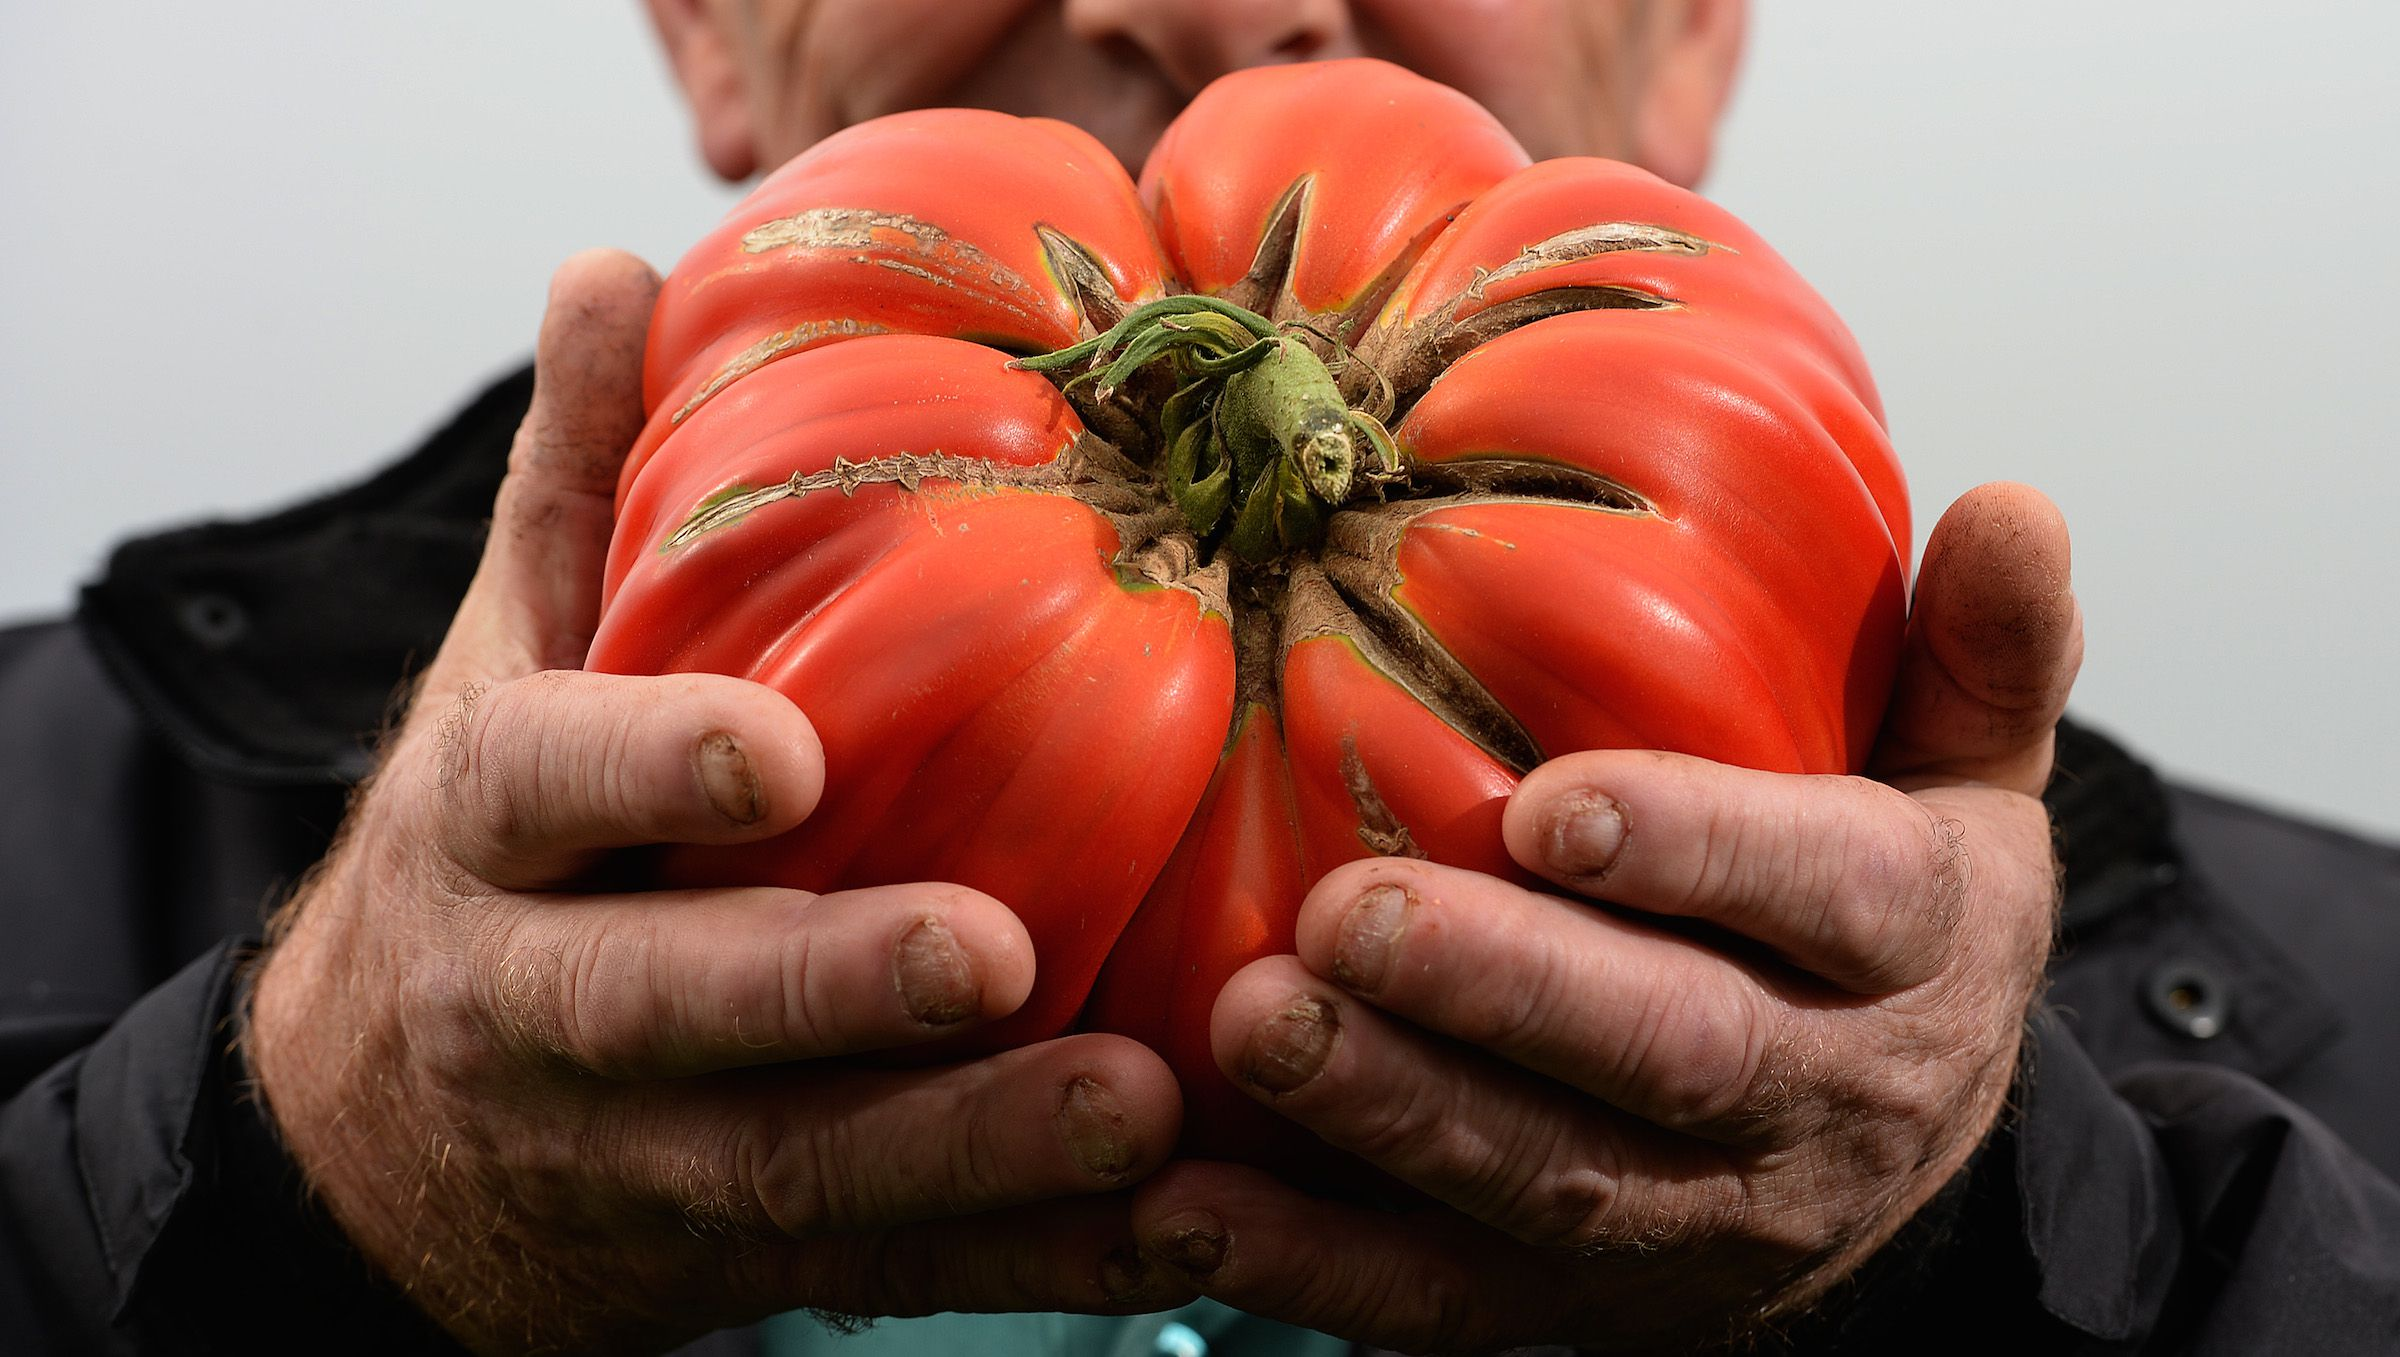 Joe Atherton of Mansfield with his first prize giant tomato weighing 2.06 kilos during the first day at the Autumn flower show in Harrogate, northern England, September 13, 2013. The annual three day event features show gardens, flower displays, giant vegetables, expert gardening and cooking advice and demonstrations REUTERS/Nigel Roddis (BRITAIN - Tags: ENVIRONMENT SOCIETY) - RTX13JQ0